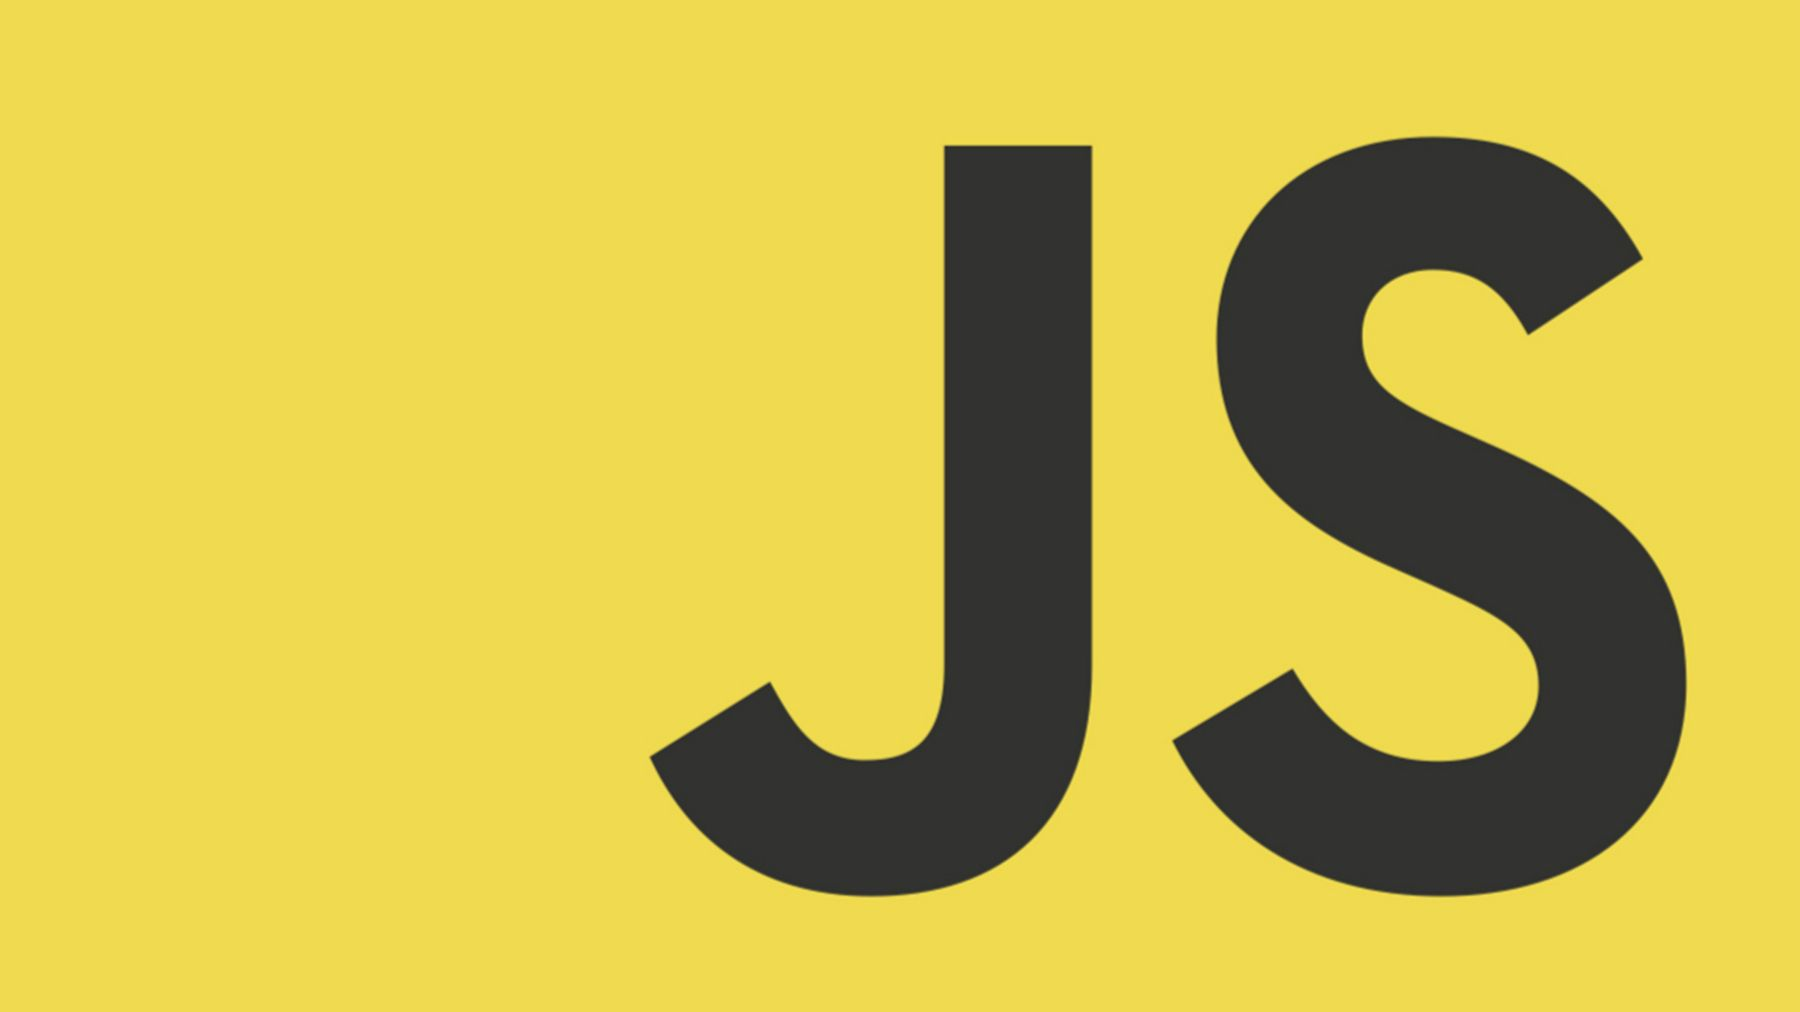 /top-12-lesser-known-tips-for-javascript-best-practices-8t26335n feature image